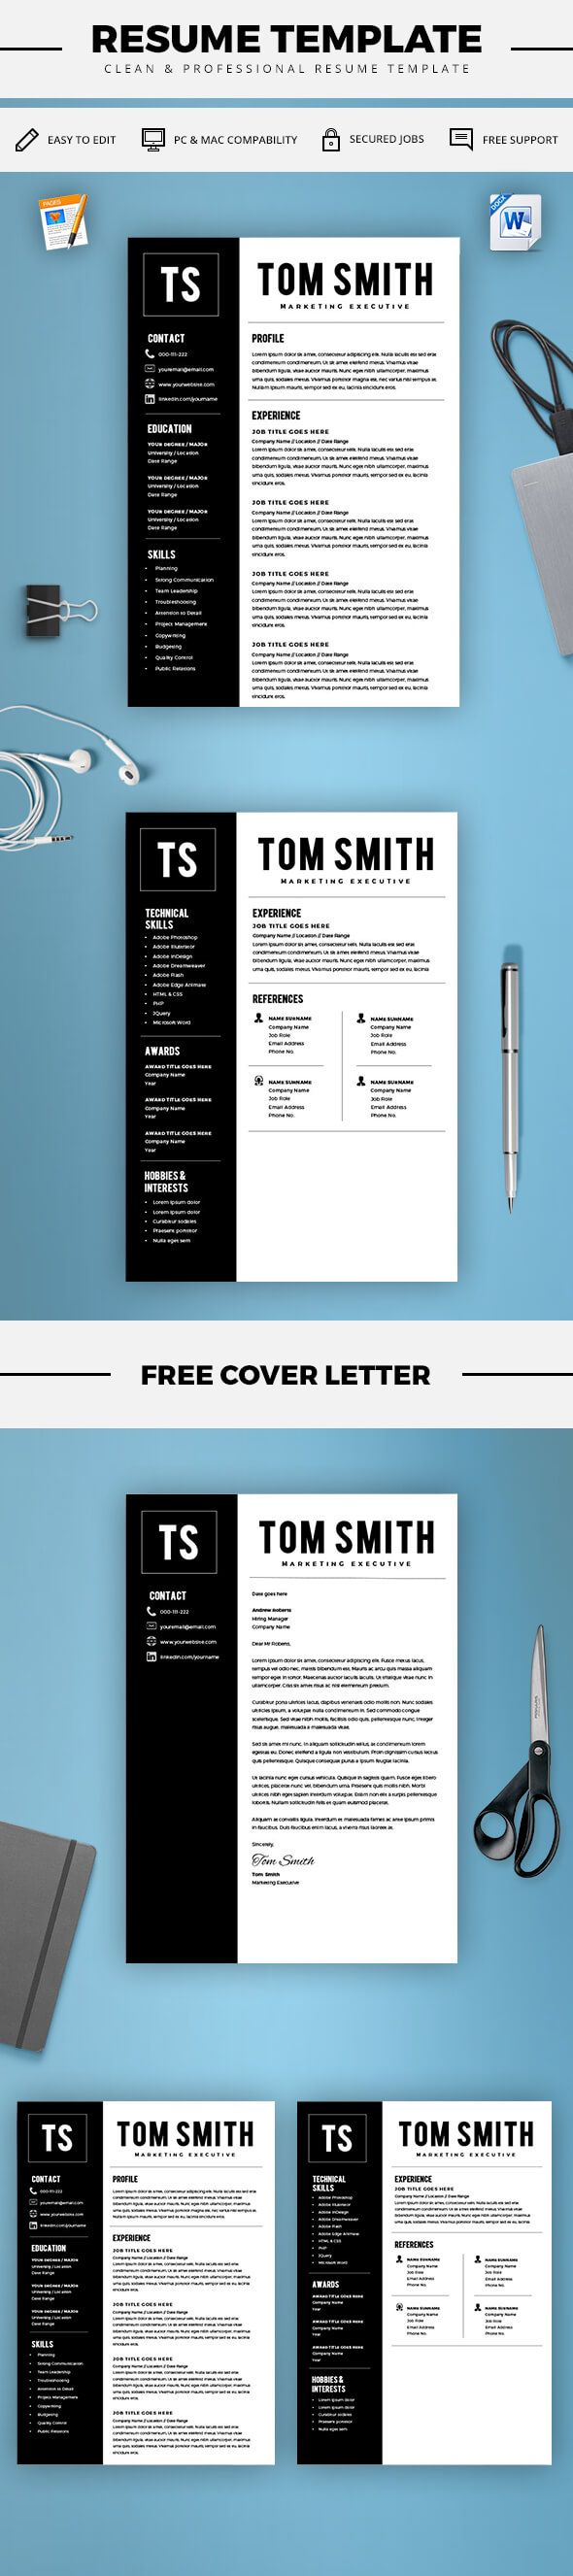 Cool 10 Best Resume Writers Thin 100 Square Pool Template Flat 100 Winning Resumes For Top Jobs Pdf 16 Year Old Resumes Old 2.25 Button Template Coloured2013 Resume Writing Trends 25  Best Ideas About Free Cv Builder On Pinterest | Job Info ..